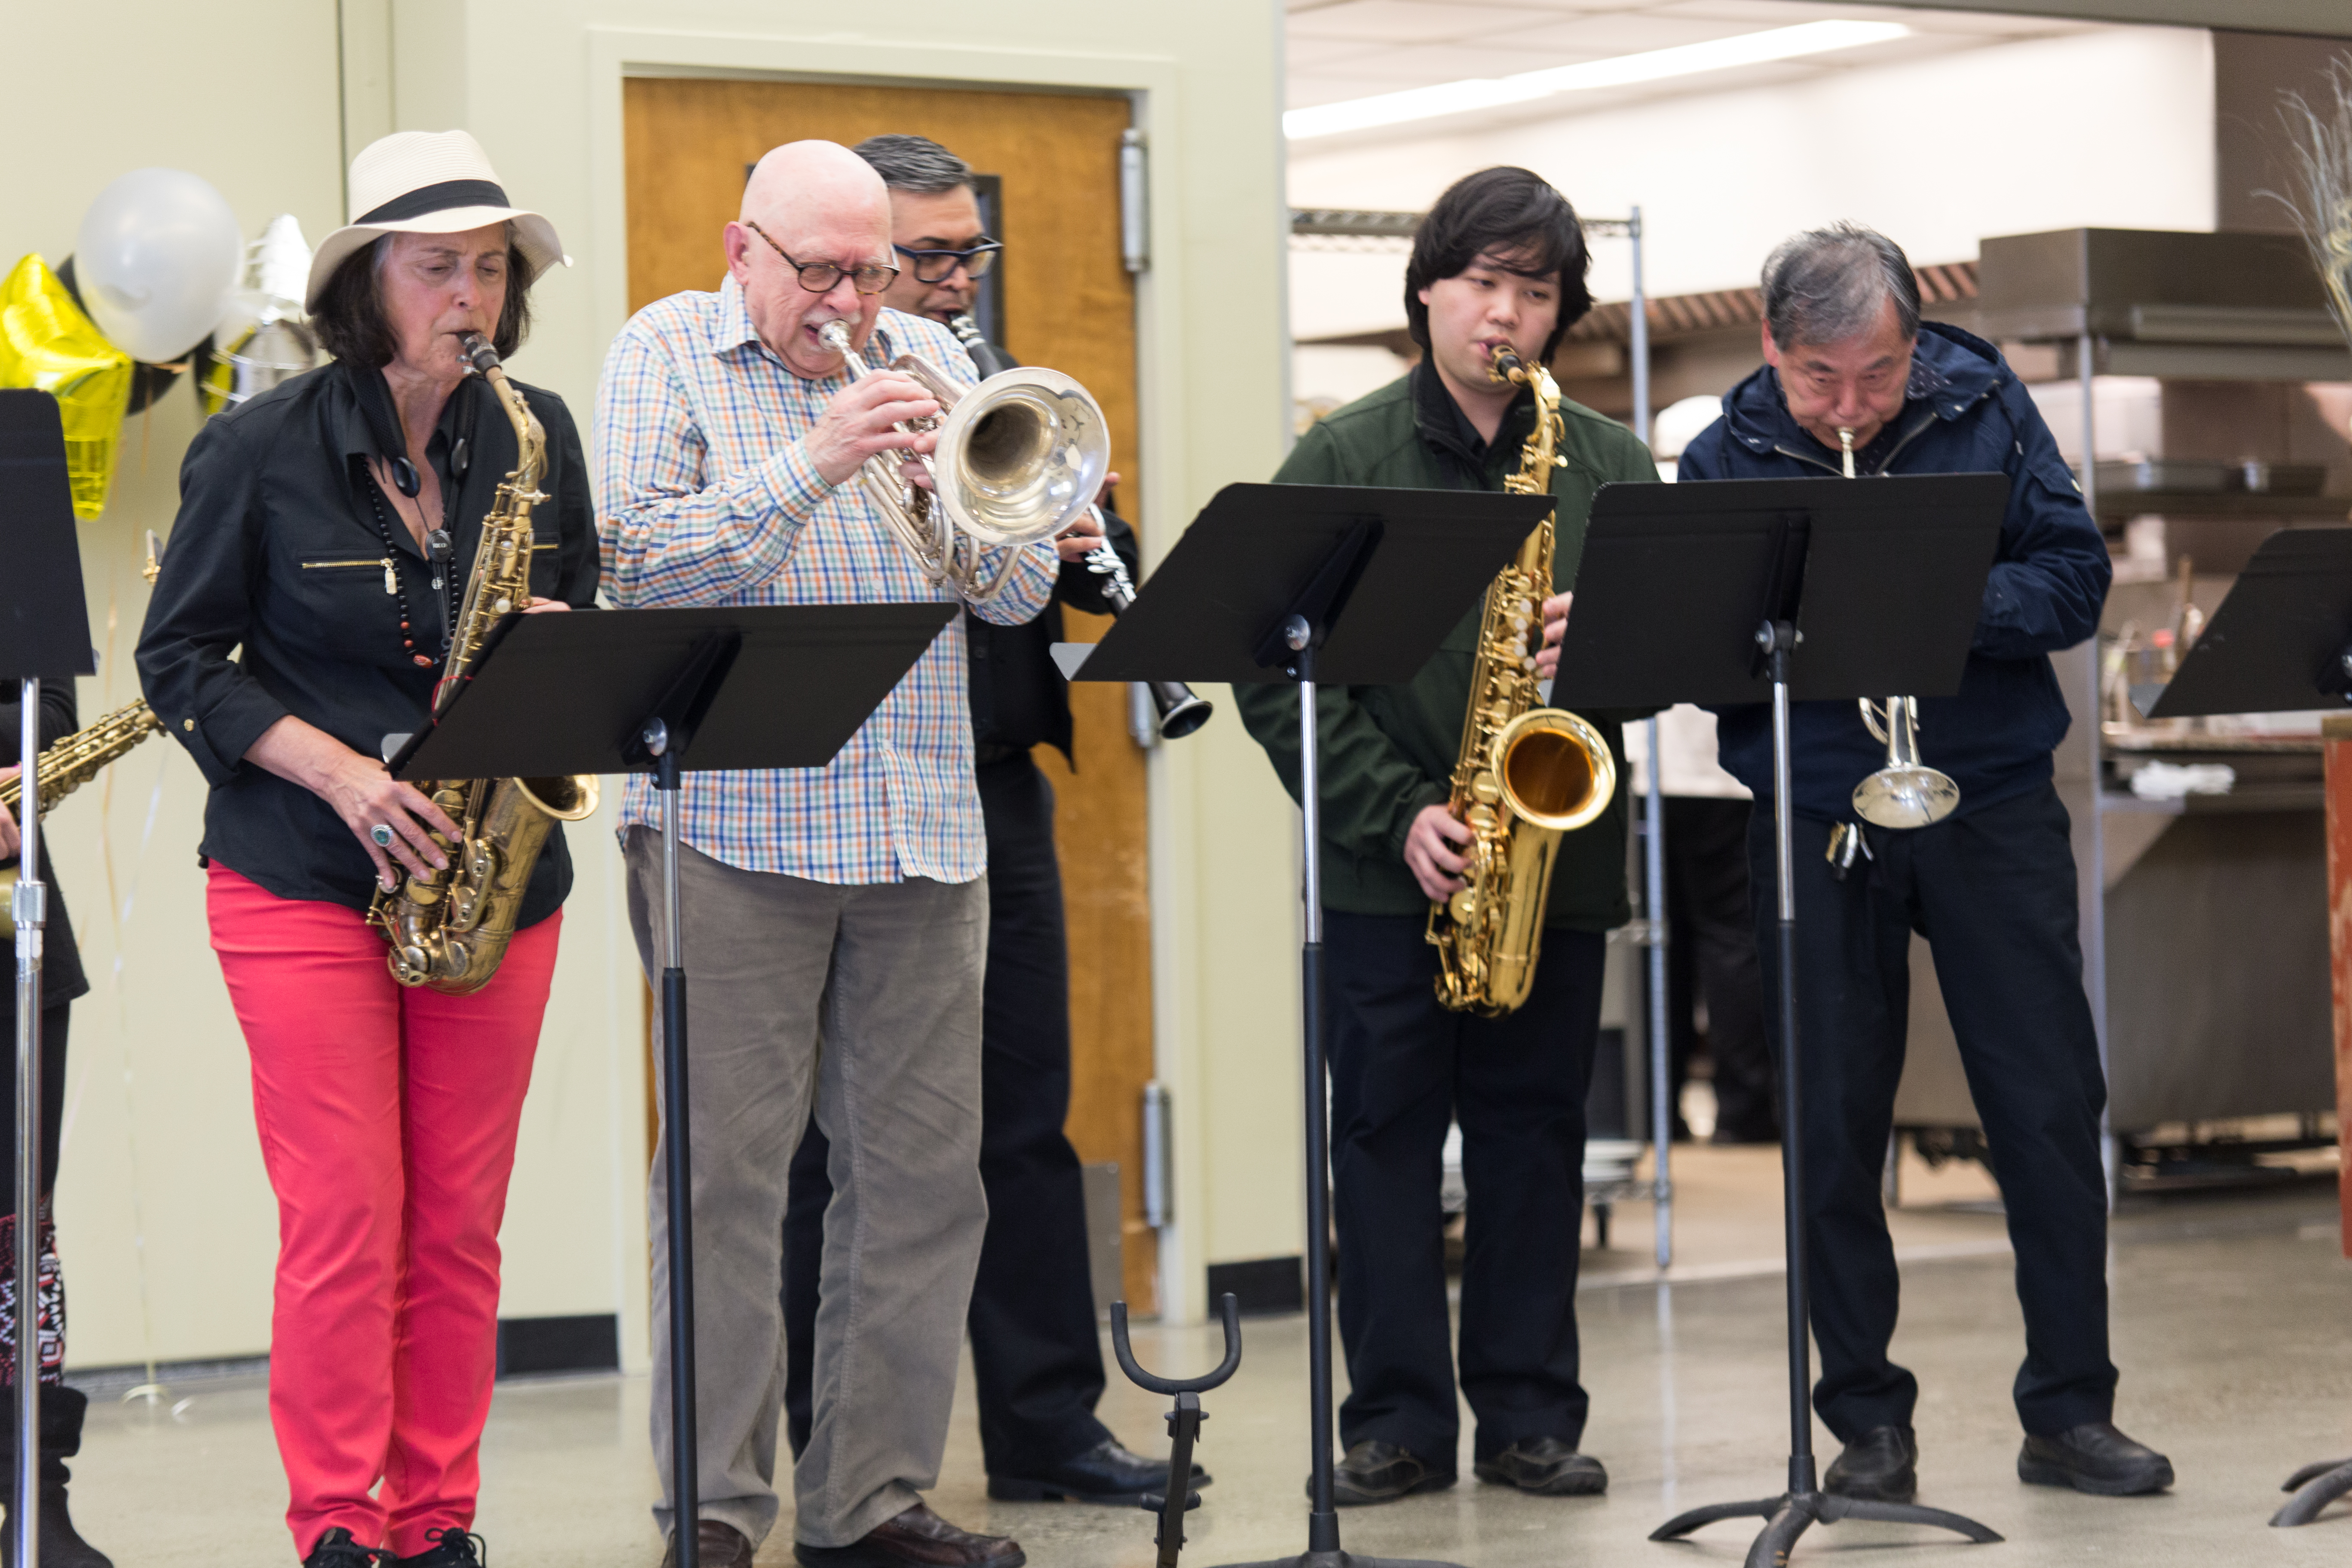 "From left to right, Frank Phipps, Van Mares, Ferdinand Hartanto, John Lou and the band performs ""When the Saints Go Marching In"" by Katharine Purvis and James Milton Black as the opening song in the Pierre Coste Room on Apr. 13, 2017. Photo by John Ortilla/The Guardsman."